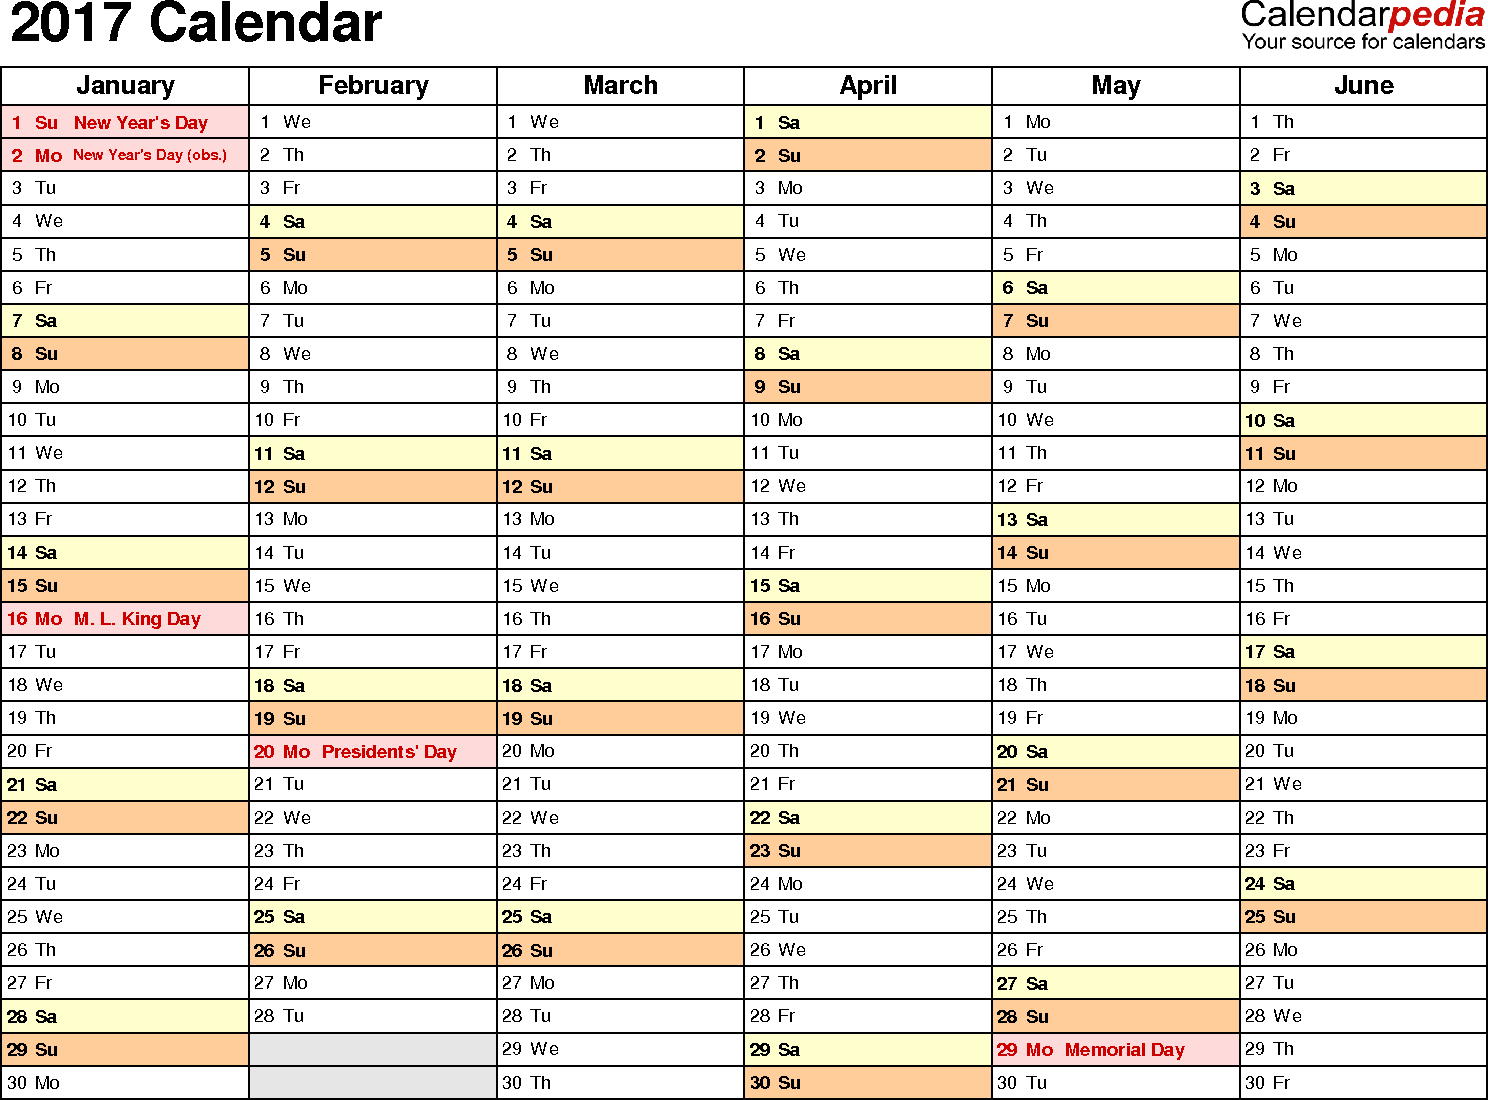 Ediblewildsus  Splendid  Calendar  Download  Free Printable Excel Templates Xls With Lovely Template   Calendar For Excel Months Horizontally  Pages Landscape Orientation With Beautiful Excel Mod Formula Also Regression Model In Excel In Addition Excel Center Friendswood And Gross Margin Calculator Excel As Well As Data Analysis Pack Excel Mac Additionally Wacc Calculation Excel From Calendarpediacom With Ediblewildsus  Lovely  Calendar  Download  Free Printable Excel Templates Xls With Beautiful Template   Calendar For Excel Months Horizontally  Pages Landscape Orientation And Splendid Excel Mod Formula Also Regression Model In Excel In Addition Excel Center Friendswood From Calendarpediacom